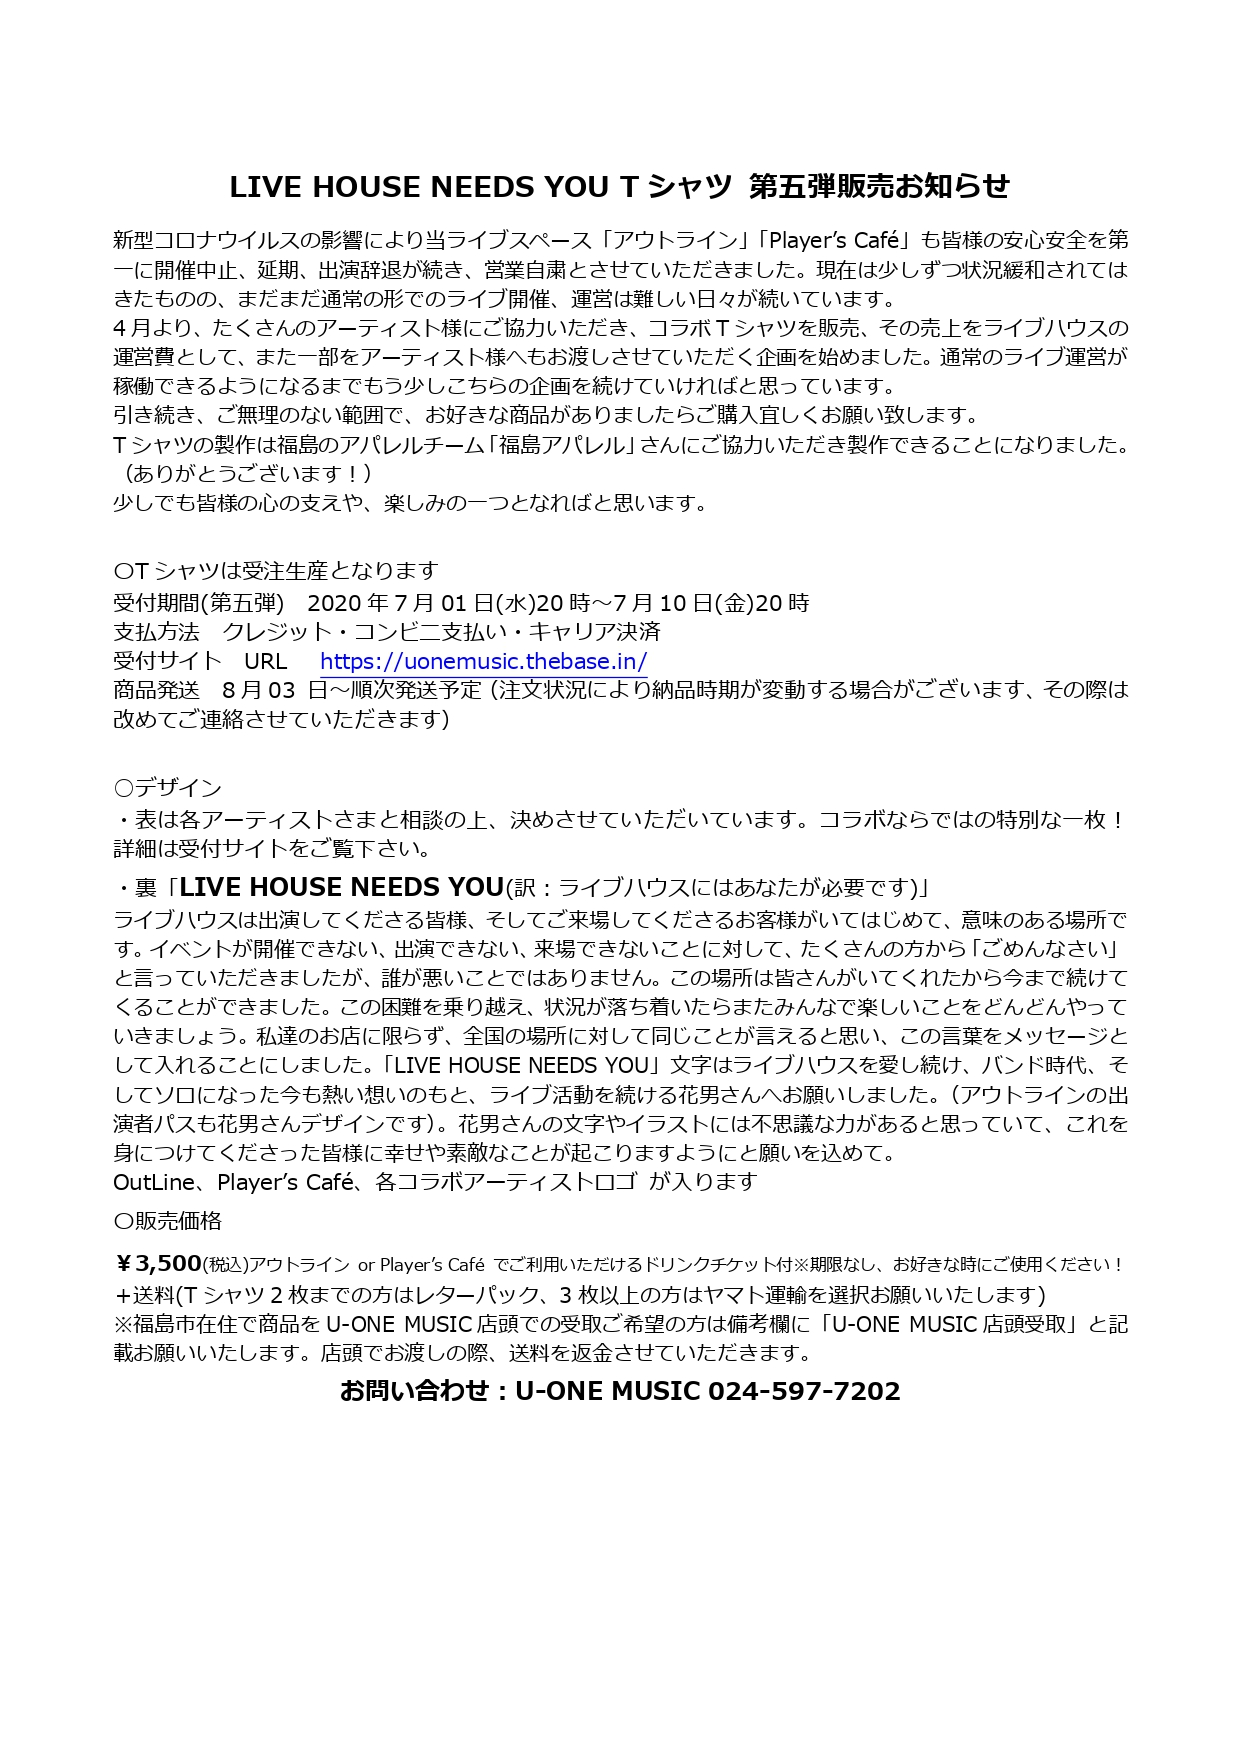 LIVE HOUSE NEEDS YOU TシャツにLUNKHEADが参加決定!